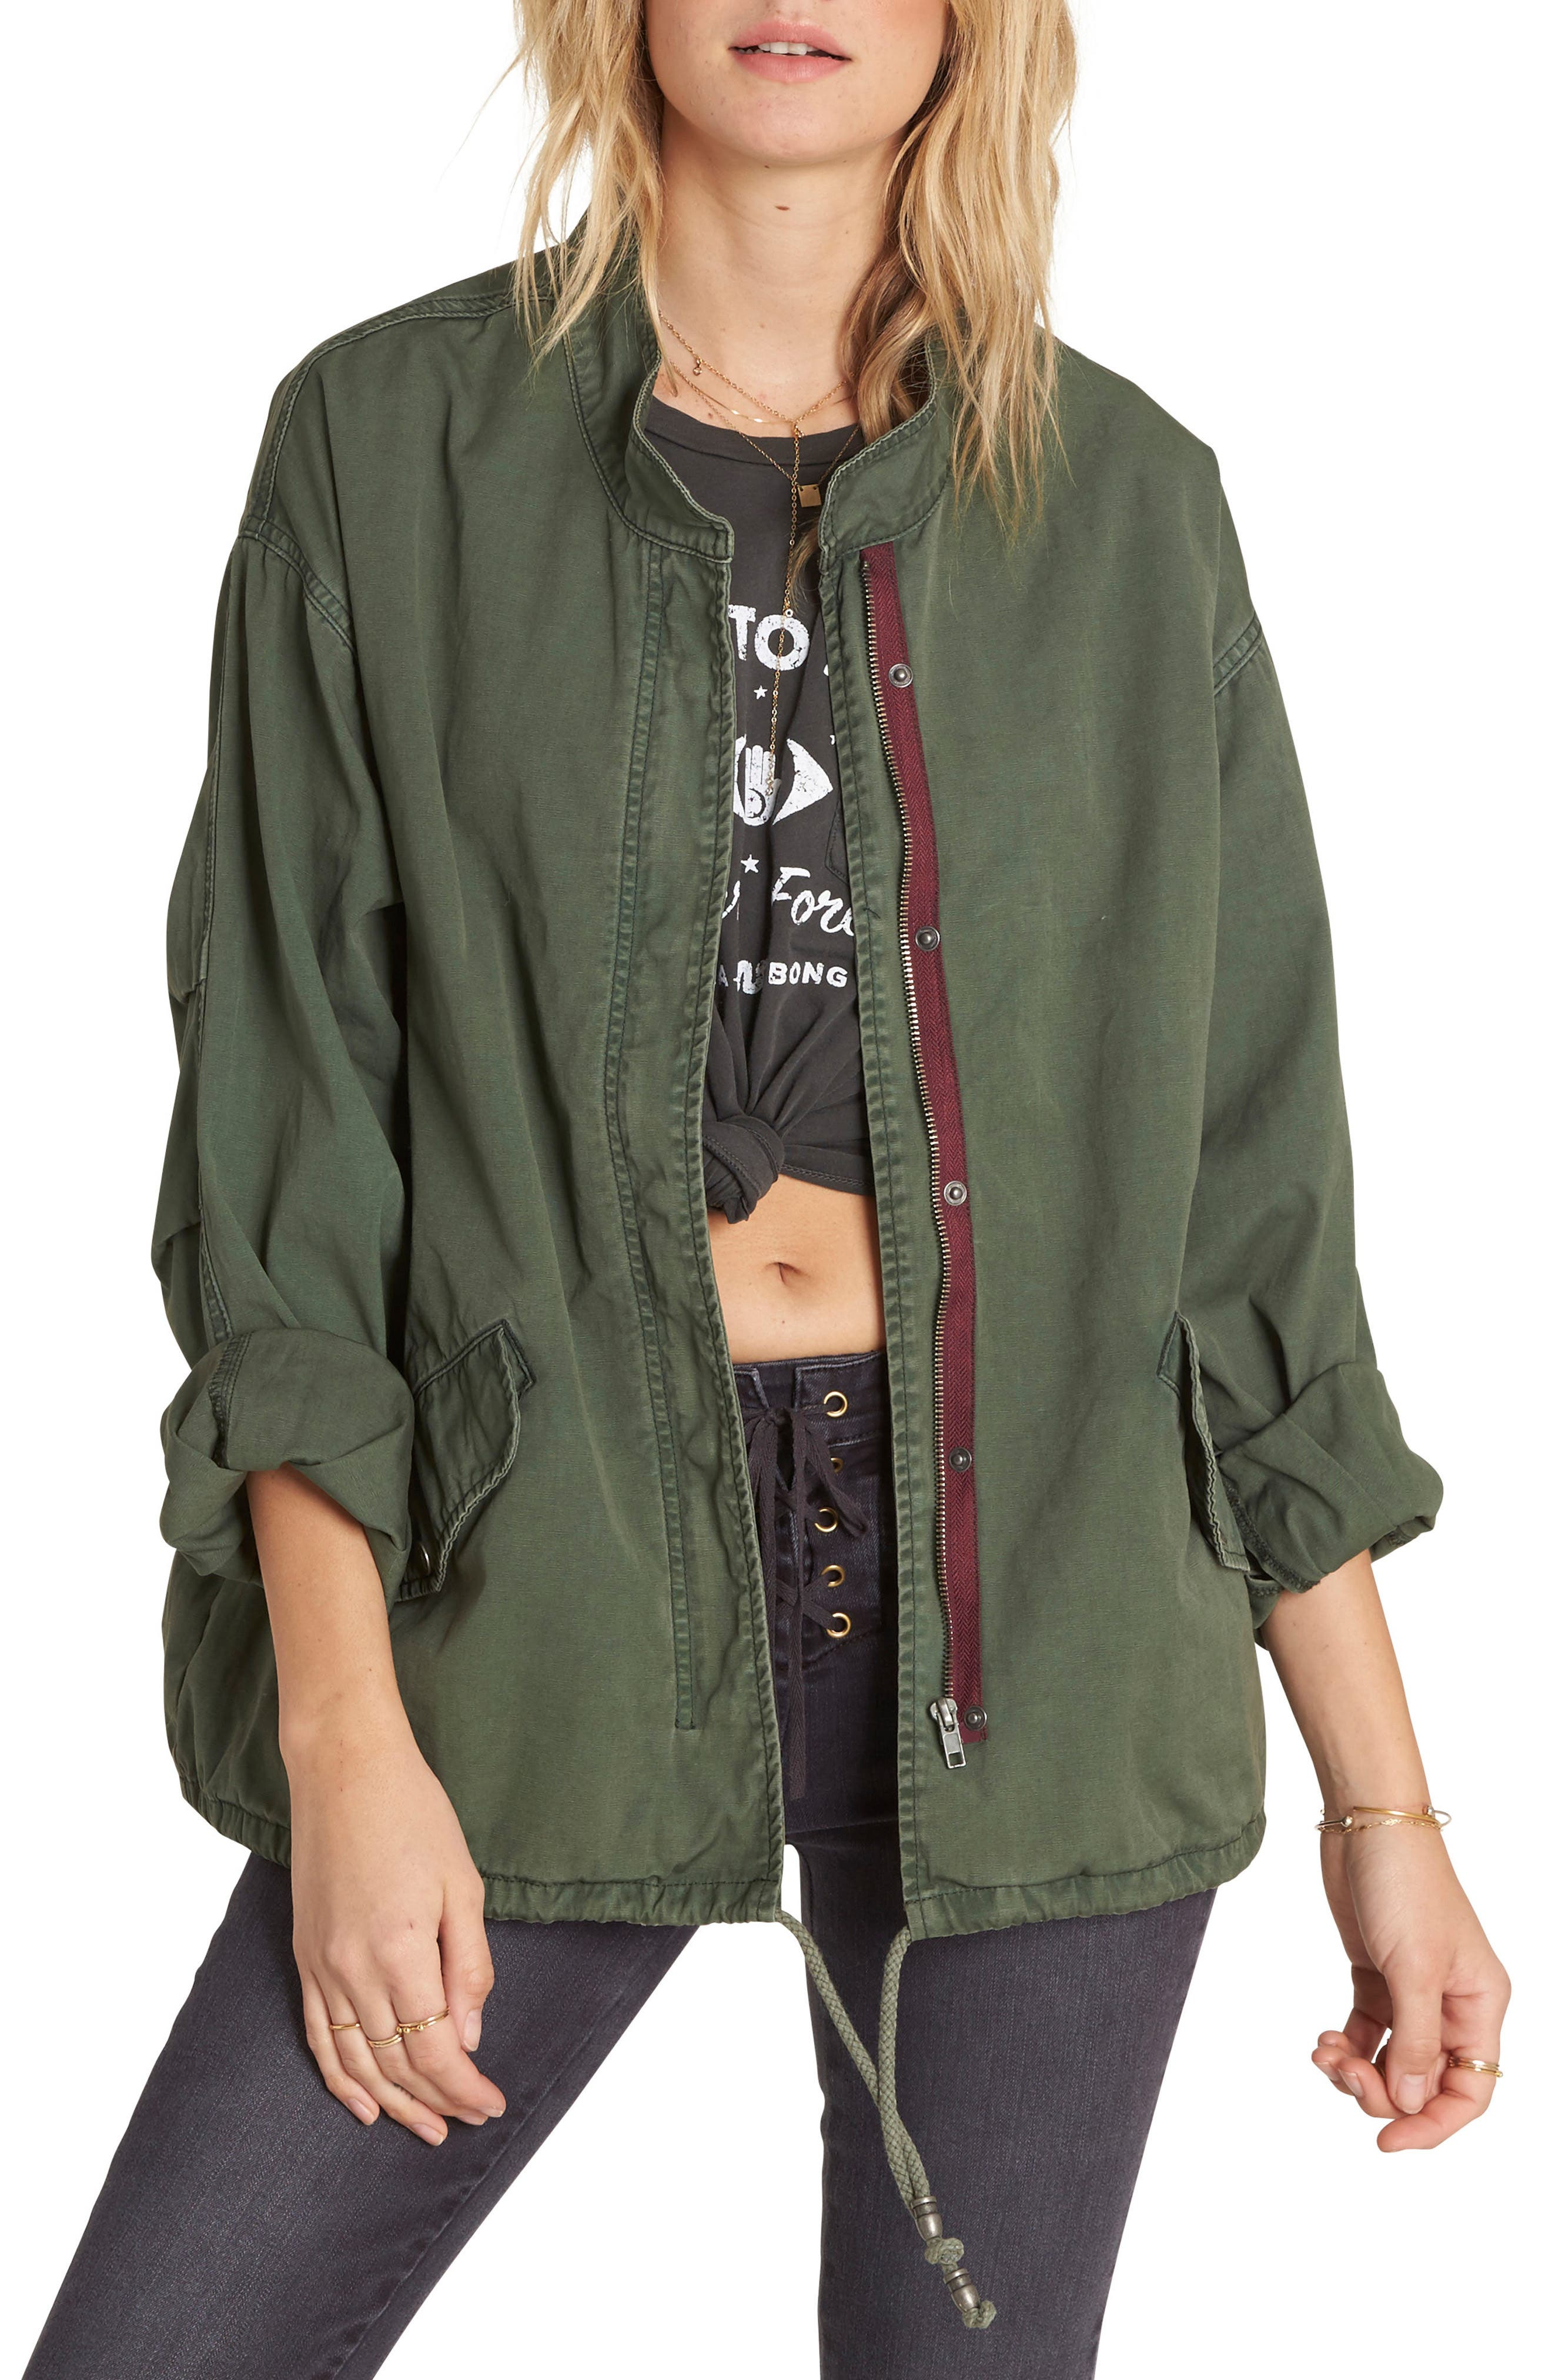 Billabong Army of One Jacket